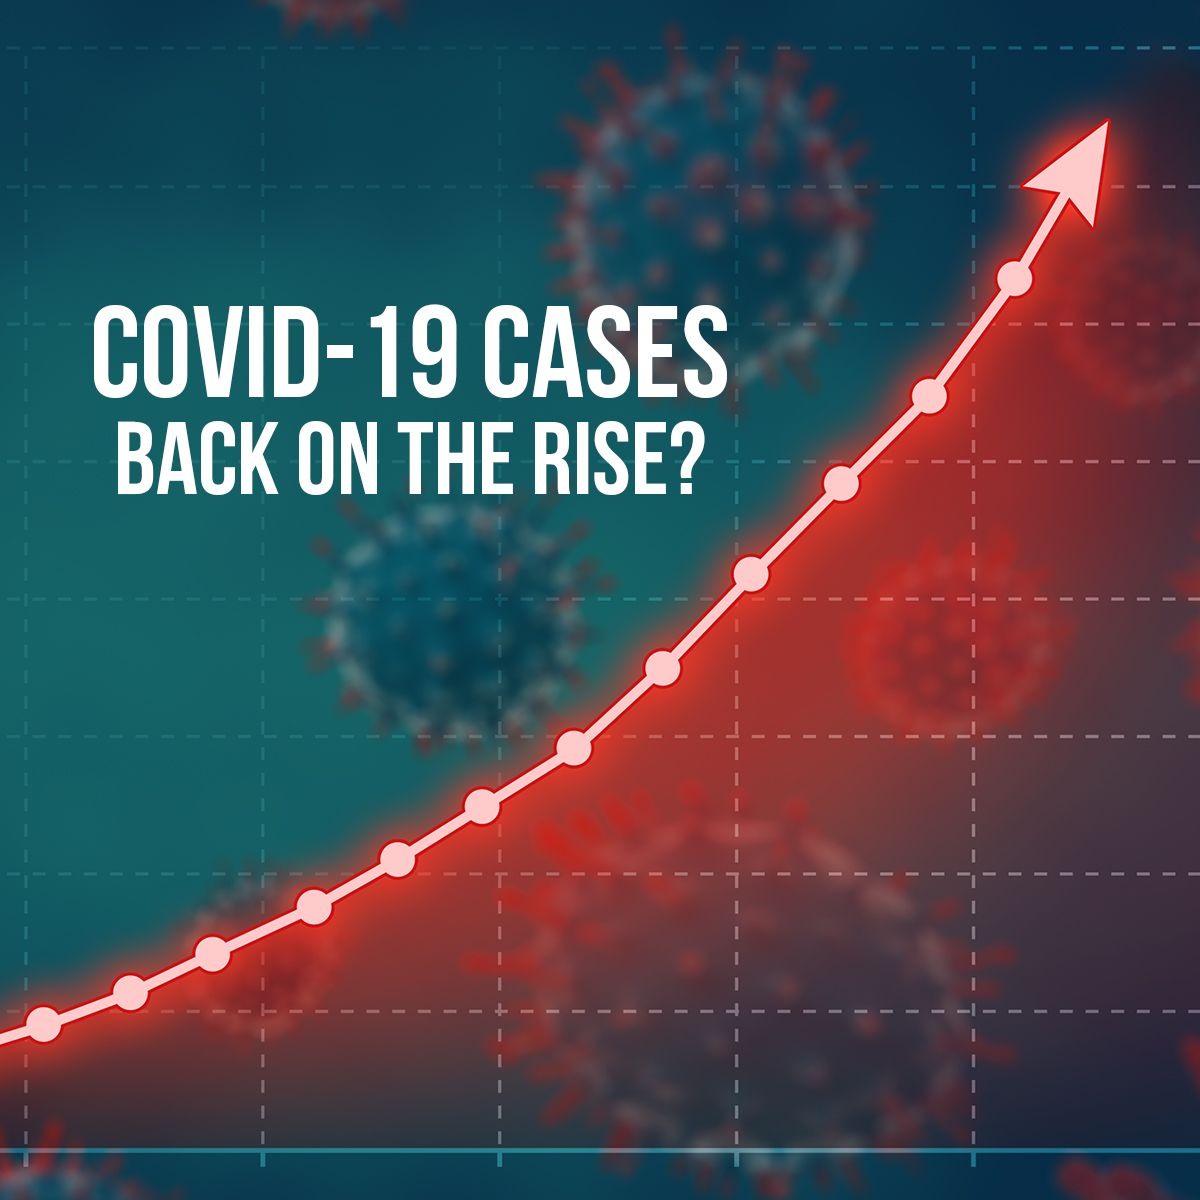 COVID-19 cases back on the rise?